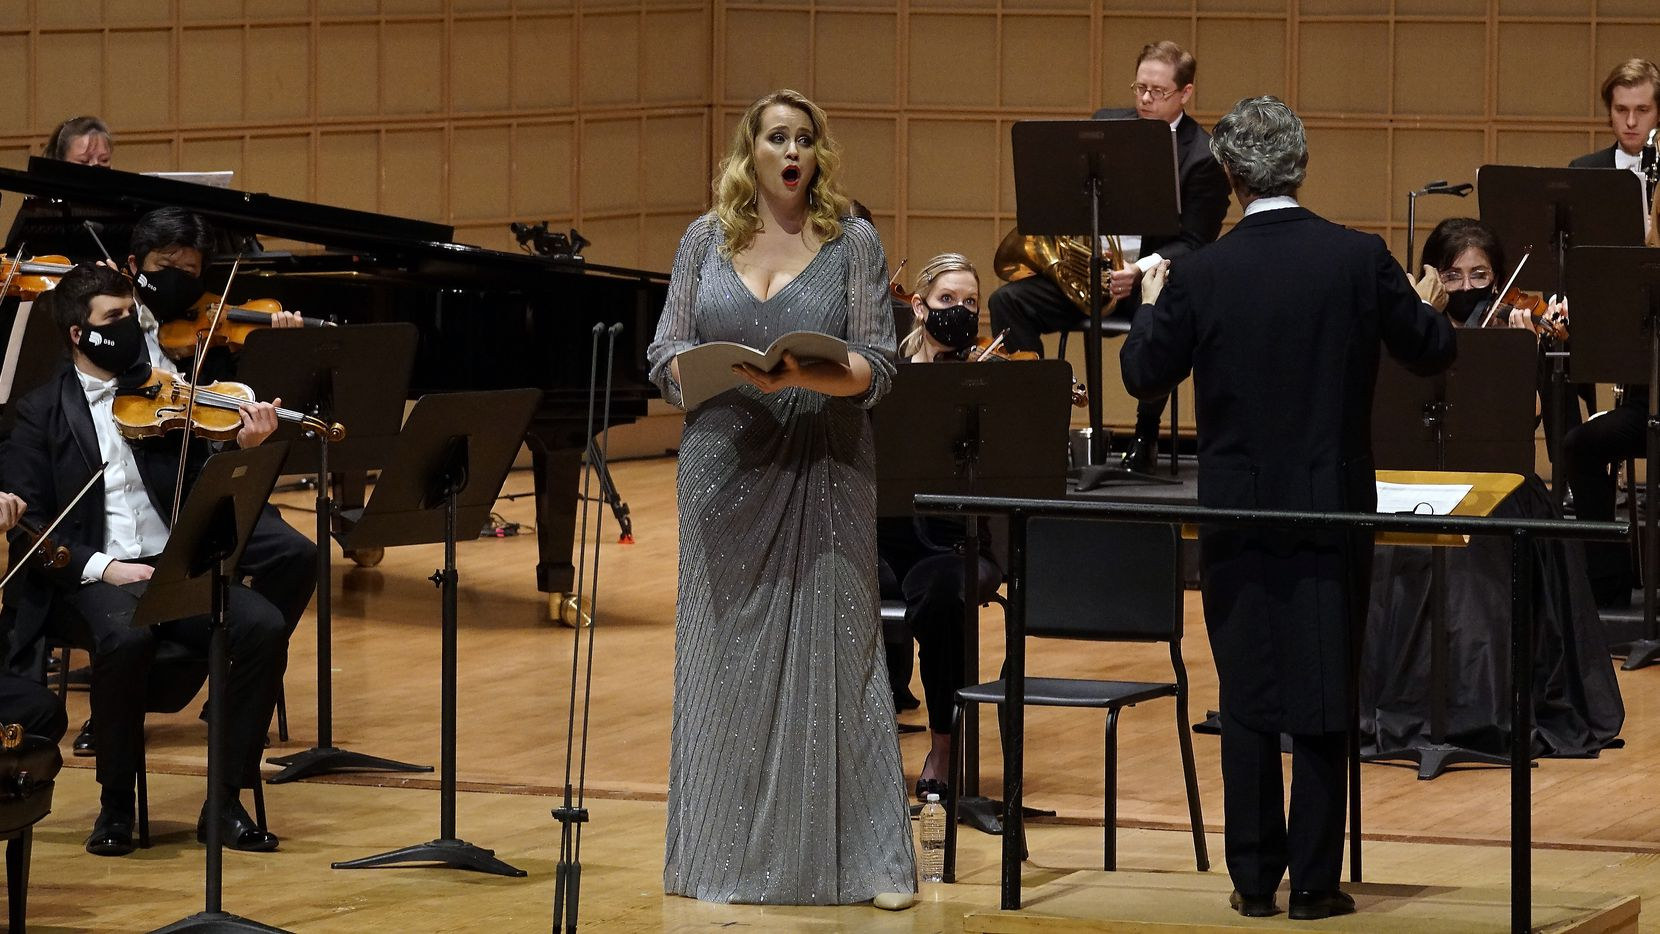 Soprano Rachel Willis-Sørensen performs with the Dallas Symphony Orchestra at the Meyerson Symphony Center on Feb. 25, 2021.